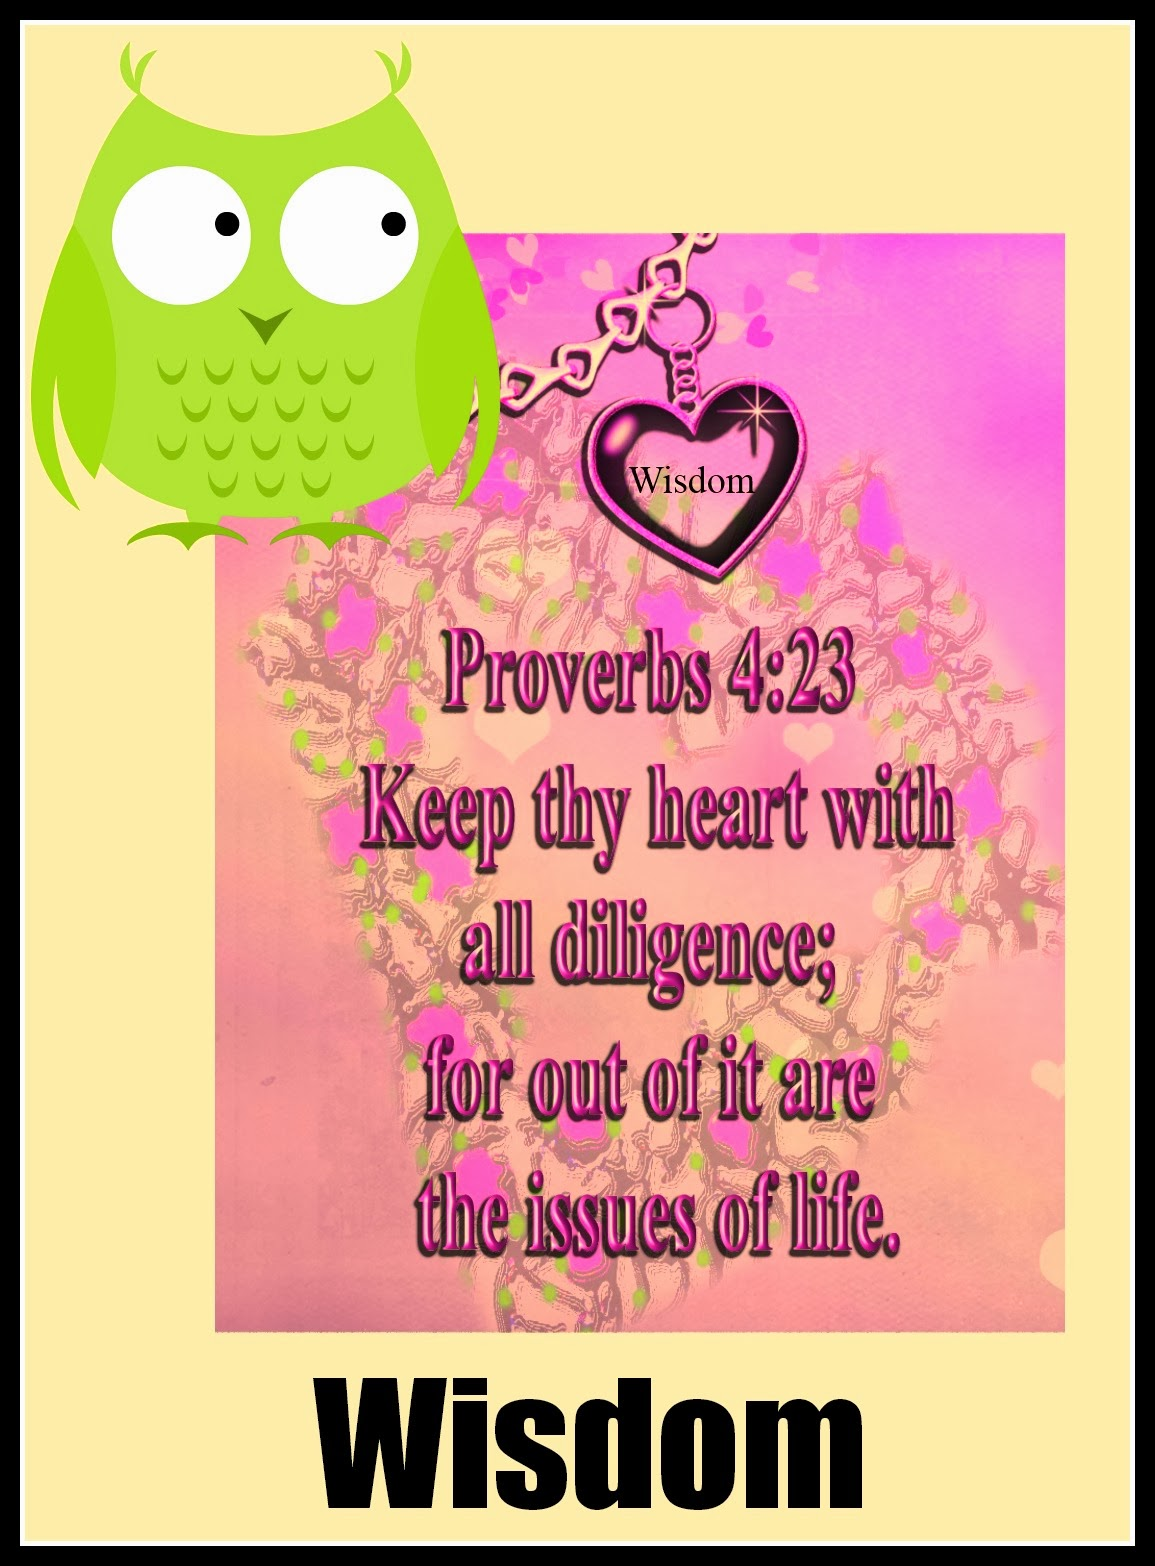 Proverbs about the teaching for children